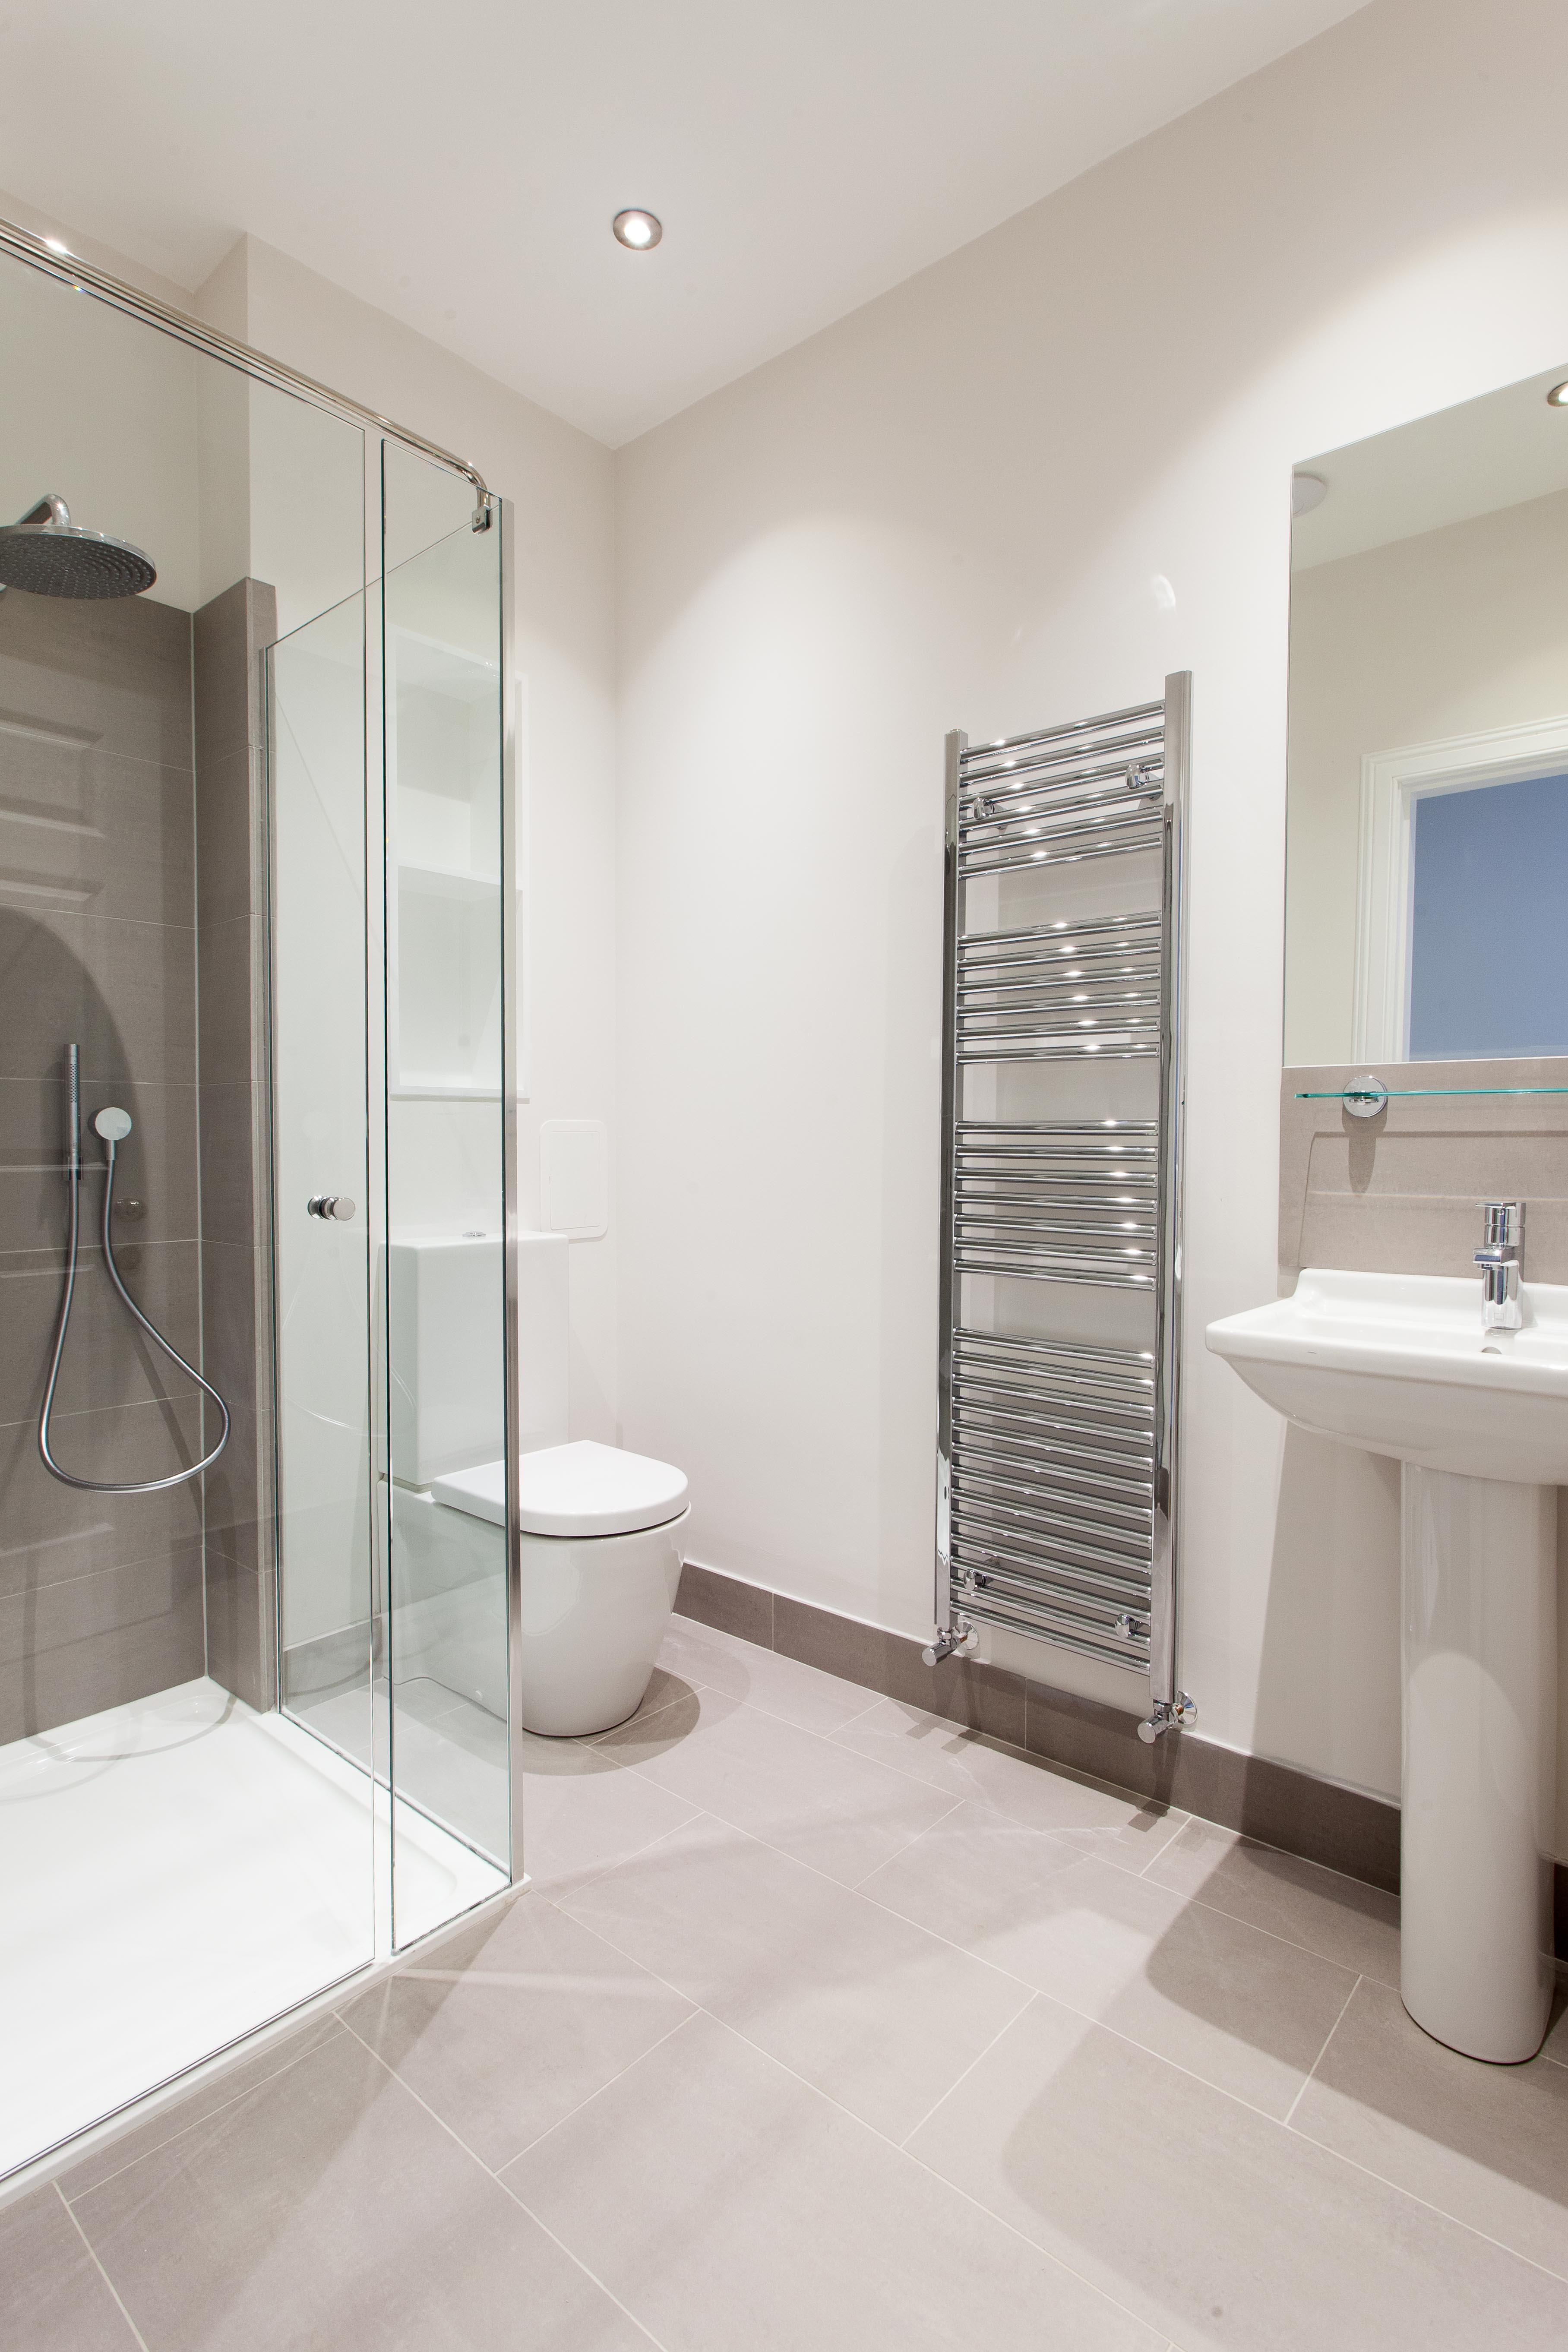 Modern bathroom with tall towel radiator with white tiles.